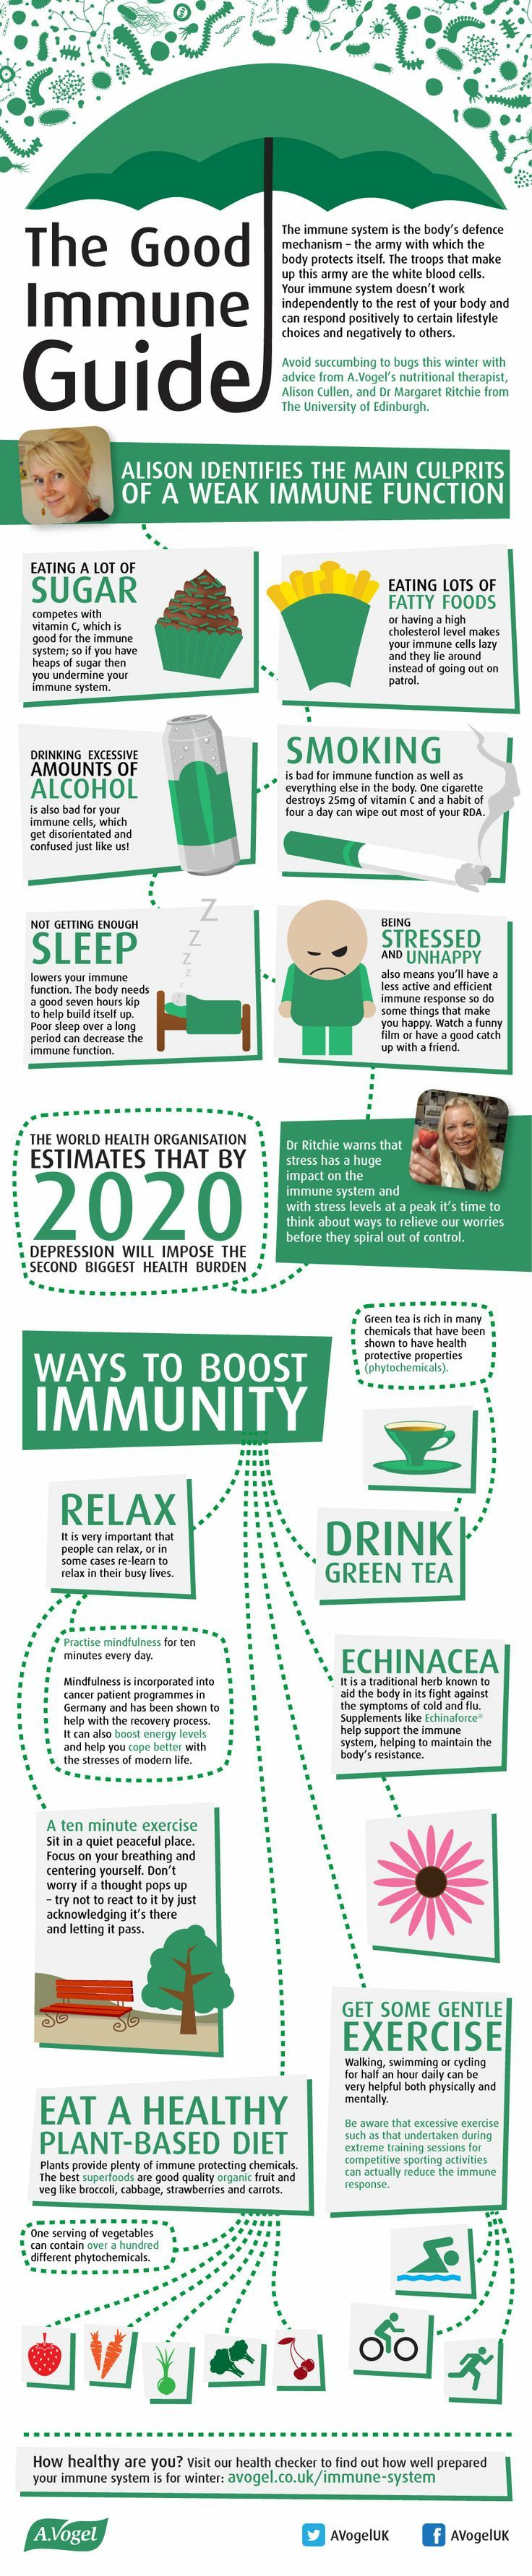 The Good Immune Guide | Favorite Pins